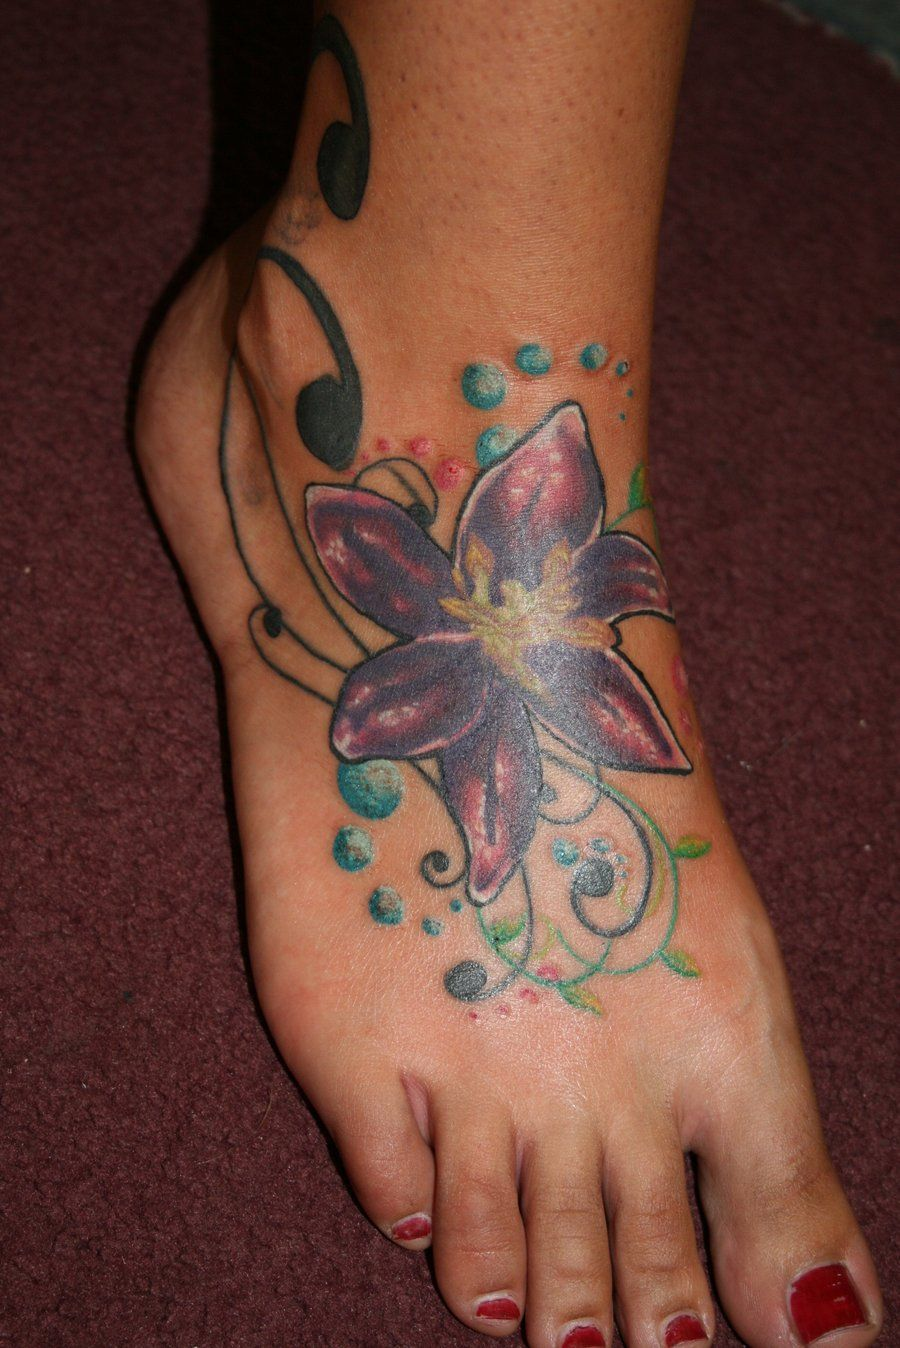 Awesome tattoos hot tattoo on men 25 awe inspiring awesome ankle tattoos